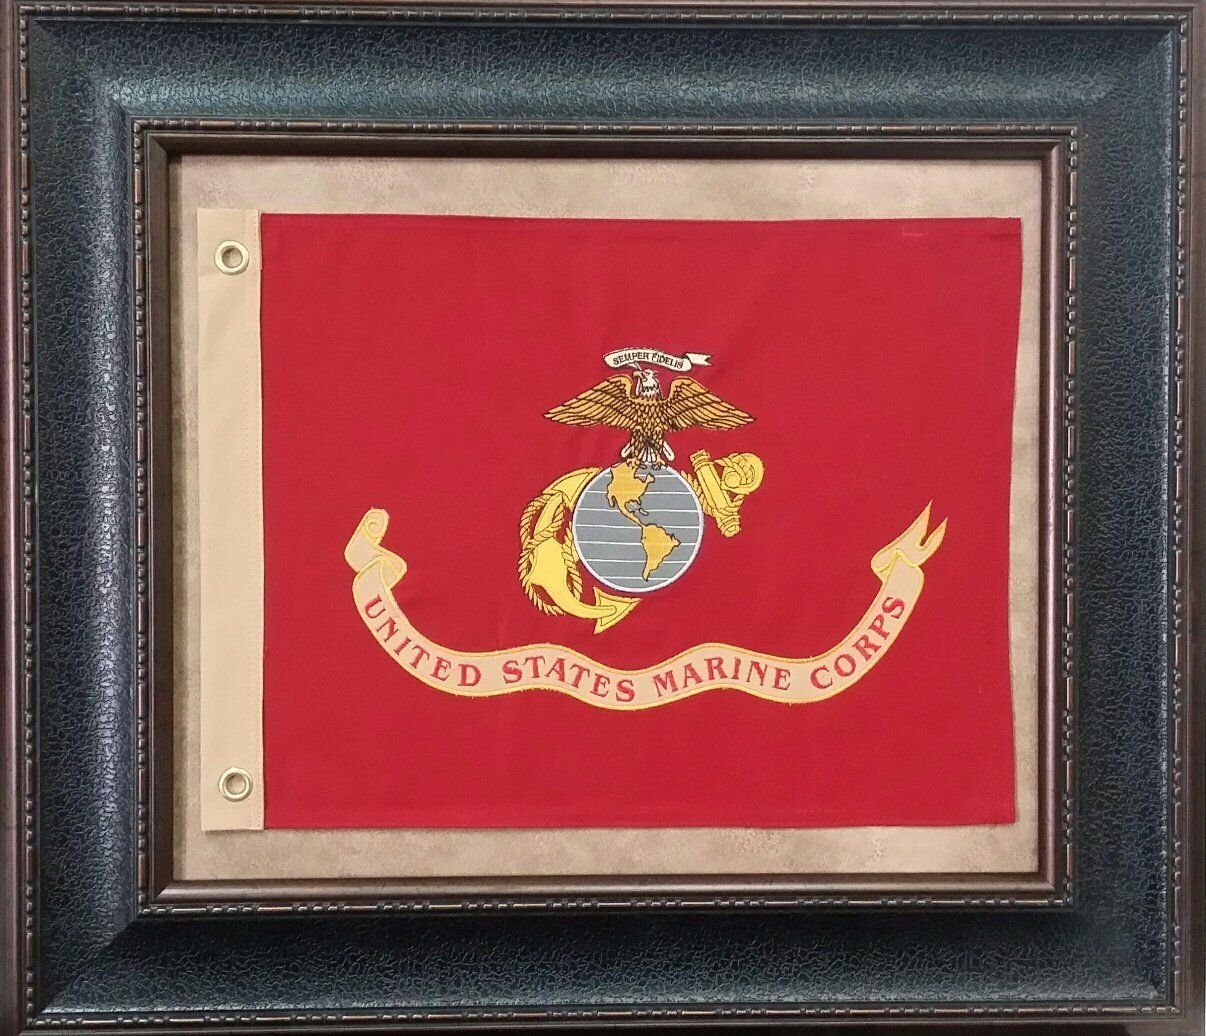 US Marine Corps Military Flag Vintage Canvas Print Picture Frame Home Decor Man Cave Wall Art Collection Gift Ideas (USA Marines Flag Framed)